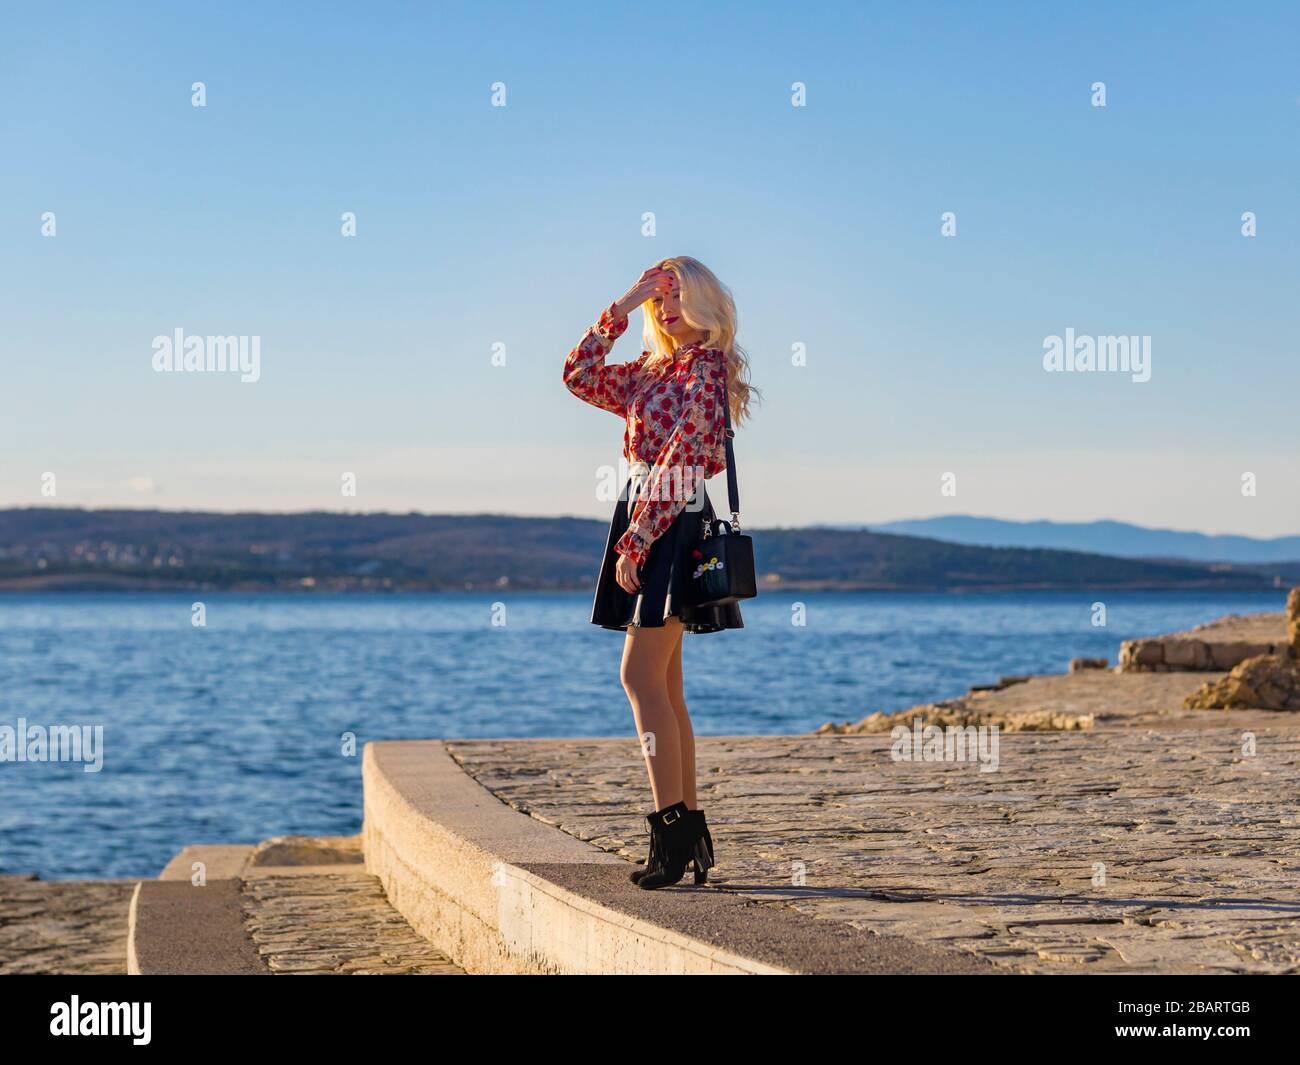 Curious standing on seaside promenade near sea profile sideview side-view looking at camera eyeshot hand holding touching hair flirting flirt Stock Photo